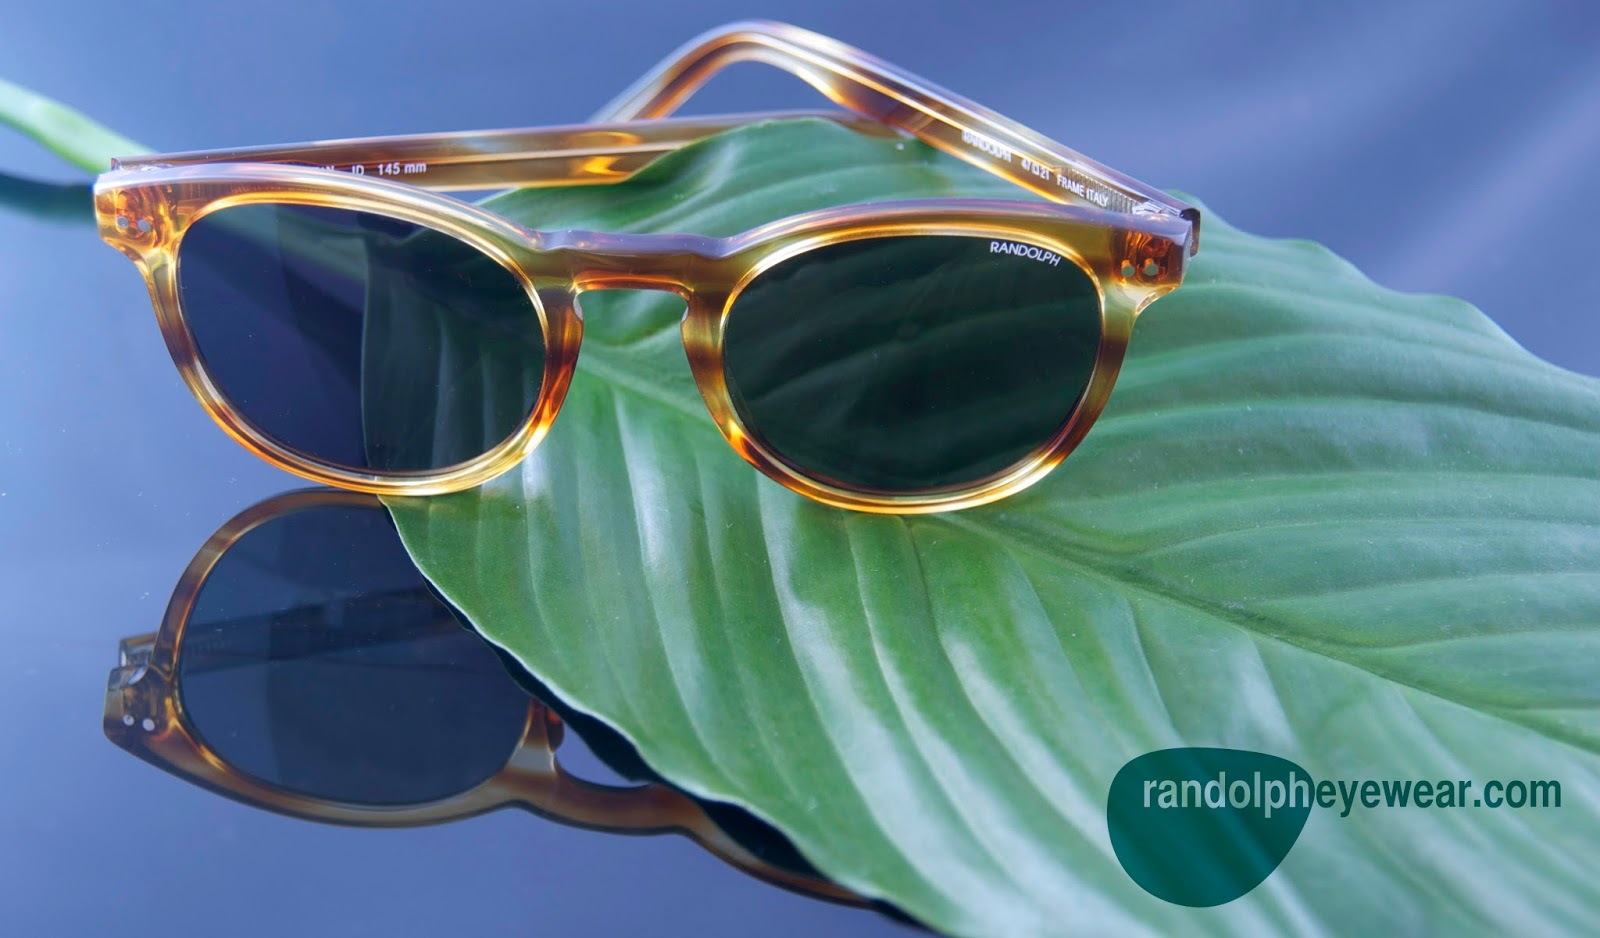 c5829149486 Randolph Eyewear  Frame of the Day - JD Sunglasses from the Michael ...